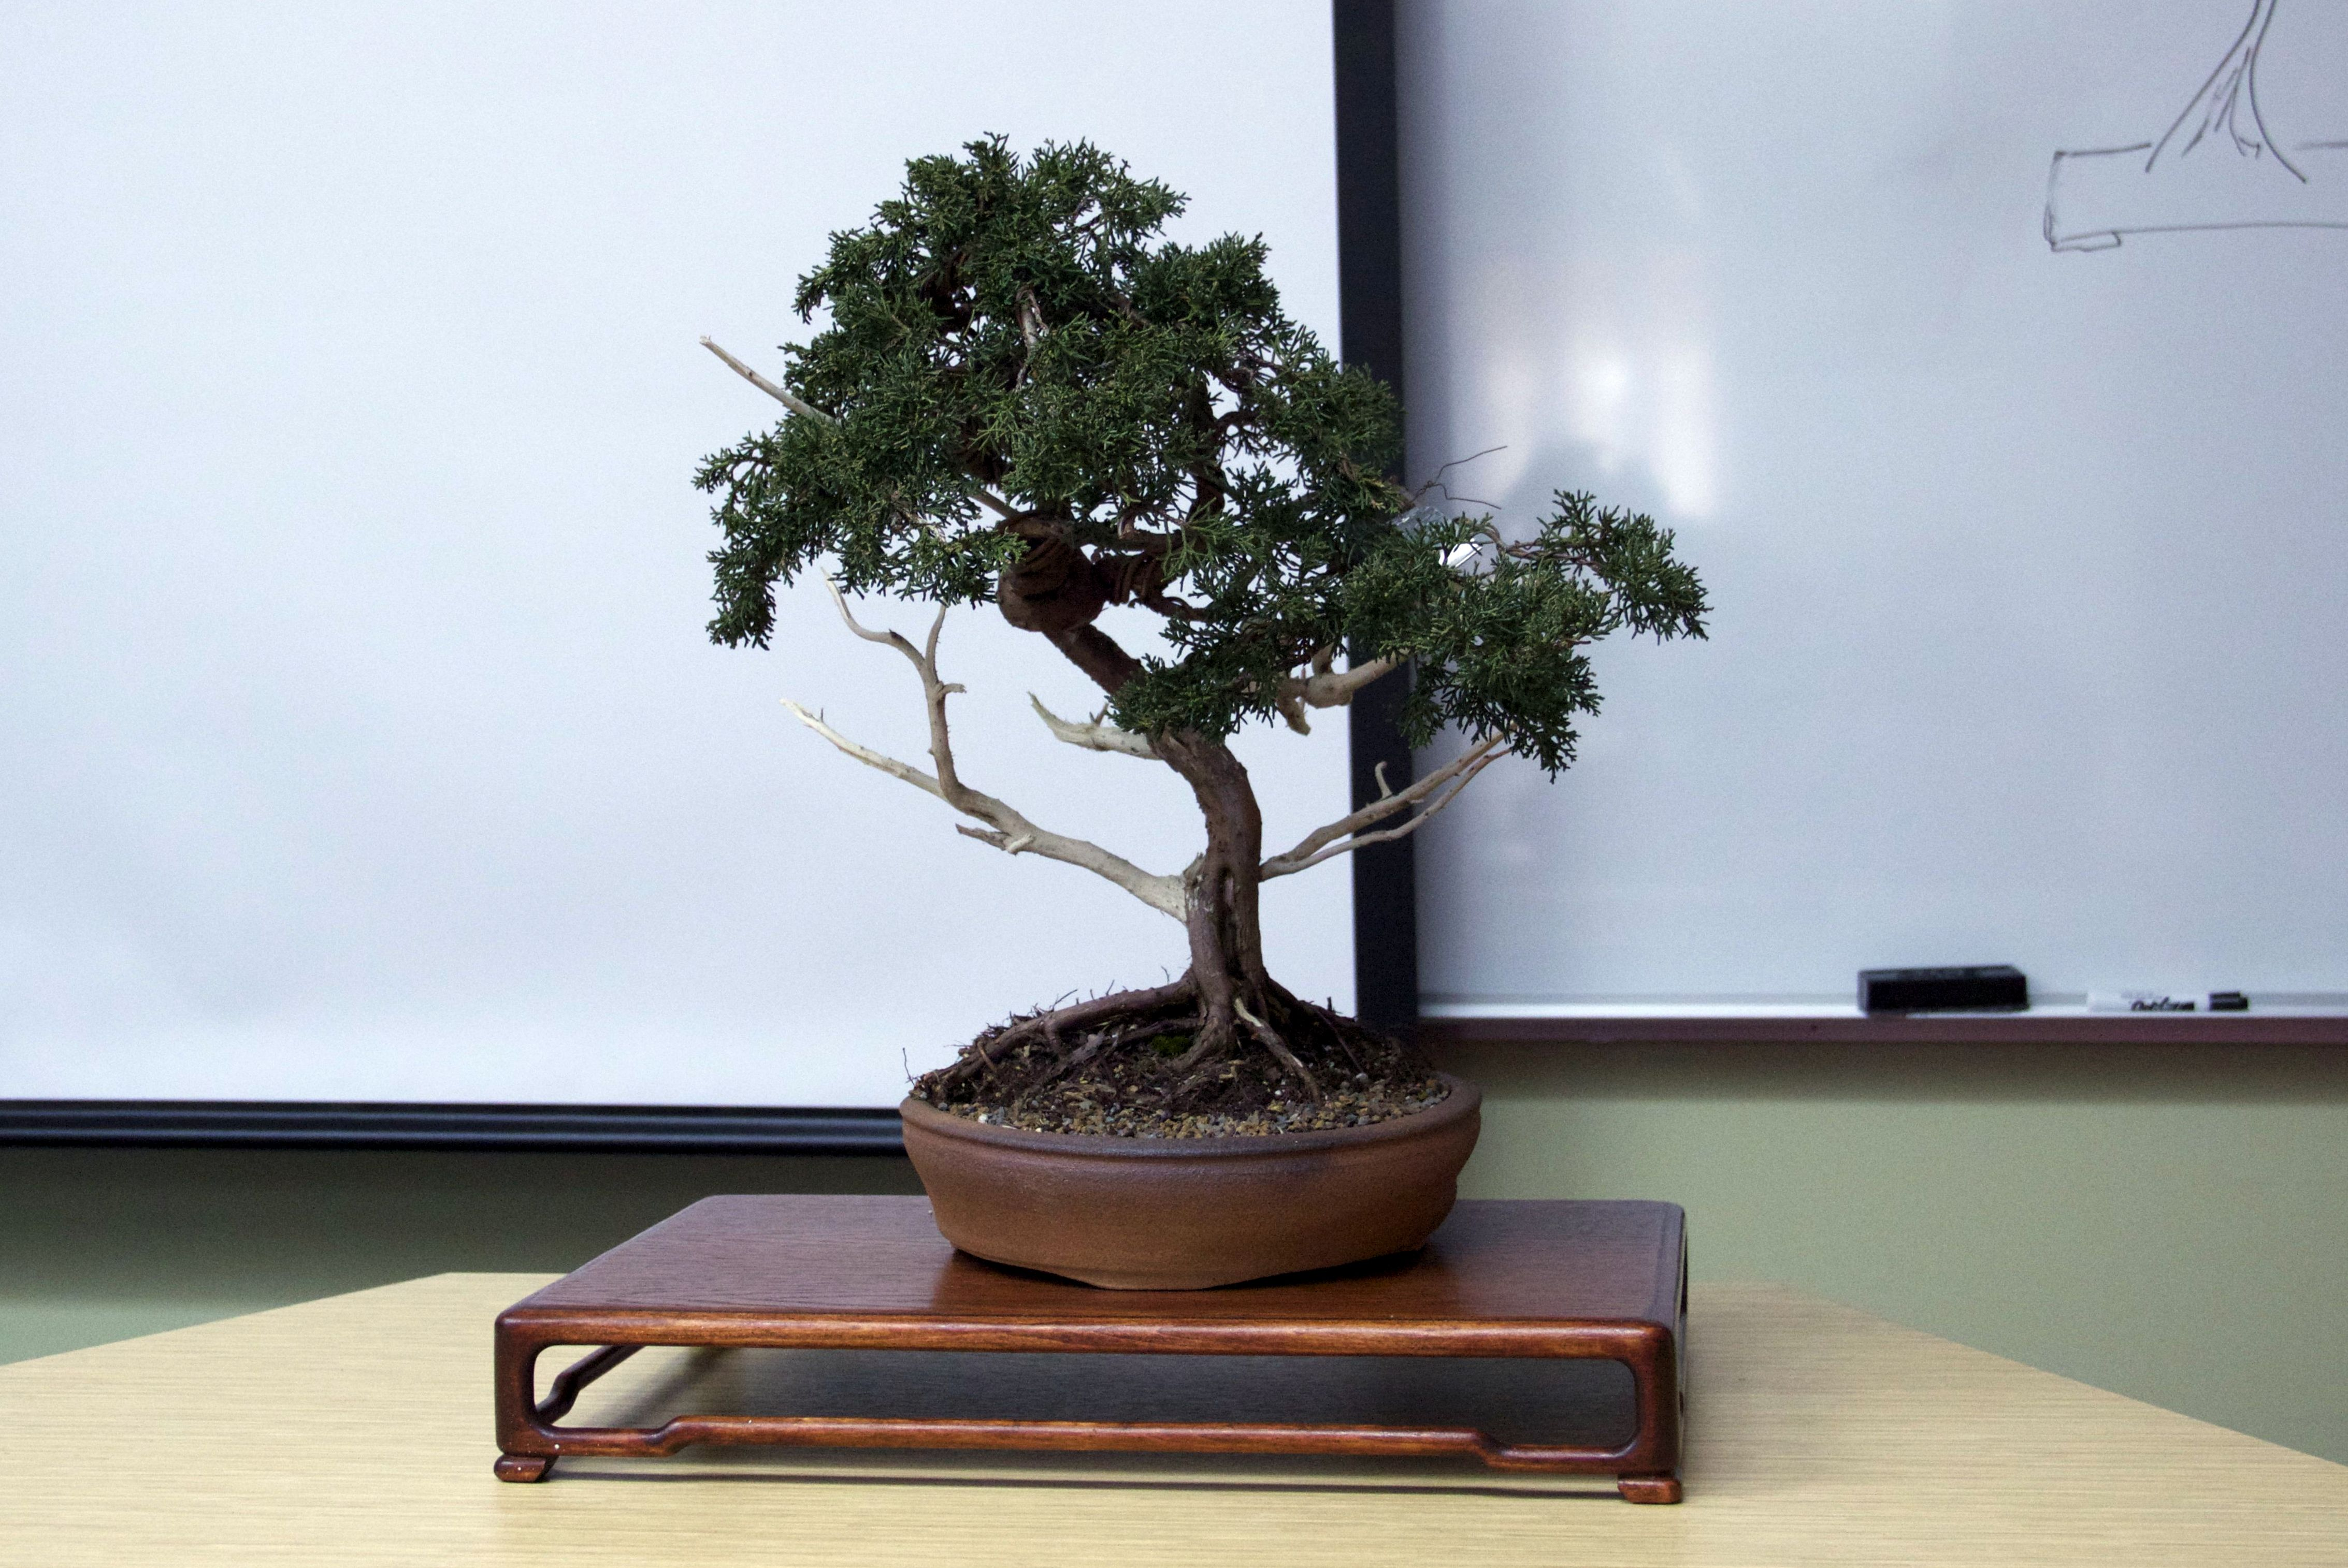 On April 2nd, 2014 Jim Doyle from Nature's Way Nursery in Harrisburg, Pa taught a class on Bonsai for students in the East Asian Studies Department. Doyle provided a brief […]